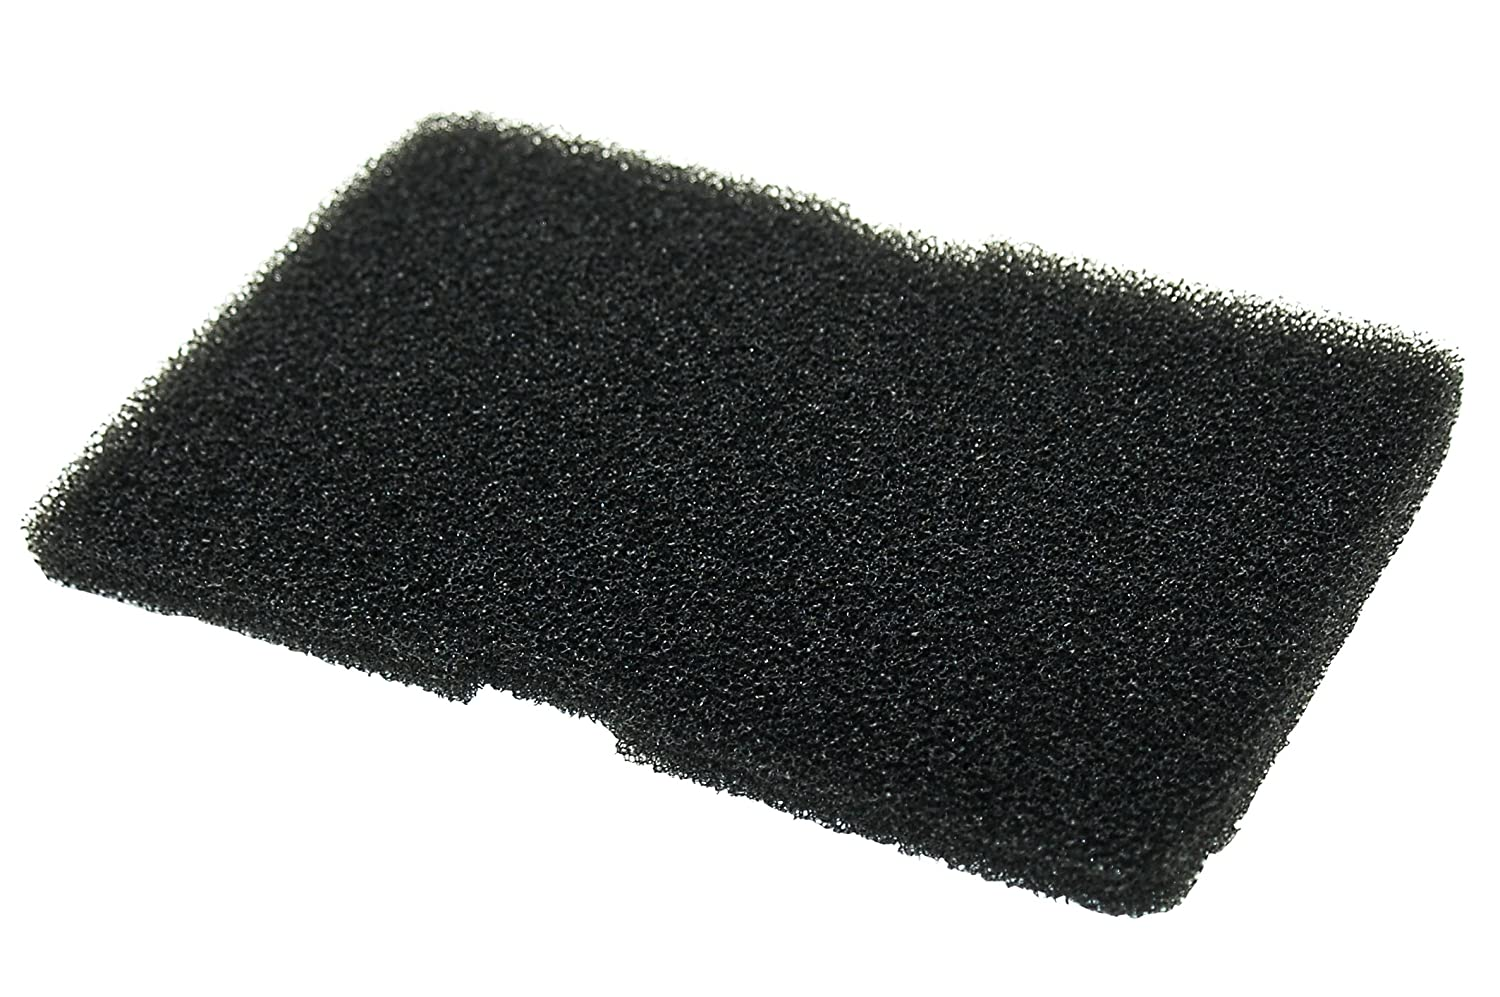 Beko Tumble Dryer Evaporator Filter Sponge. Genuine Part Number 2964840100